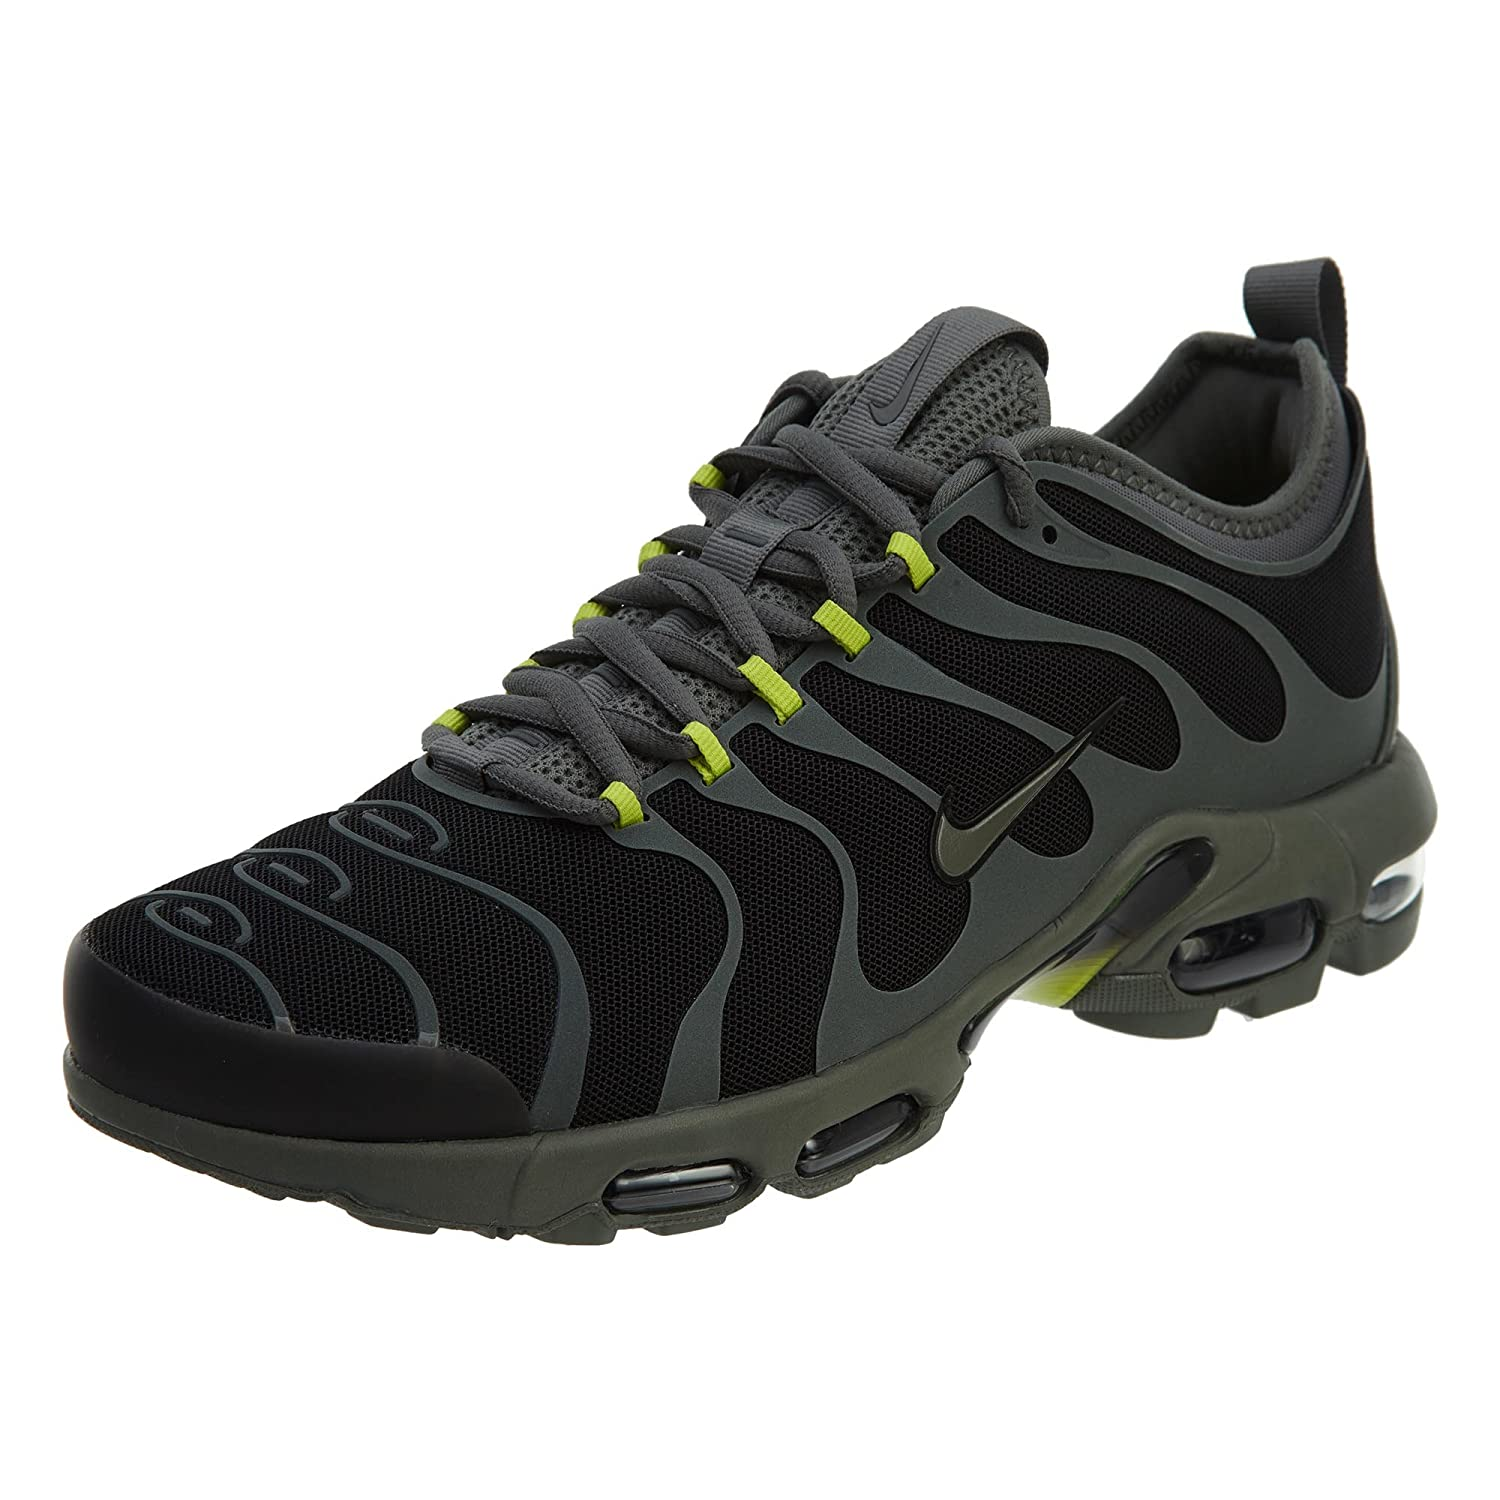 5ff26236bd Amazon.com | Nike Air Max Plus Tn Ultra Mens Style: 898015-006 Size: 7 |  Running